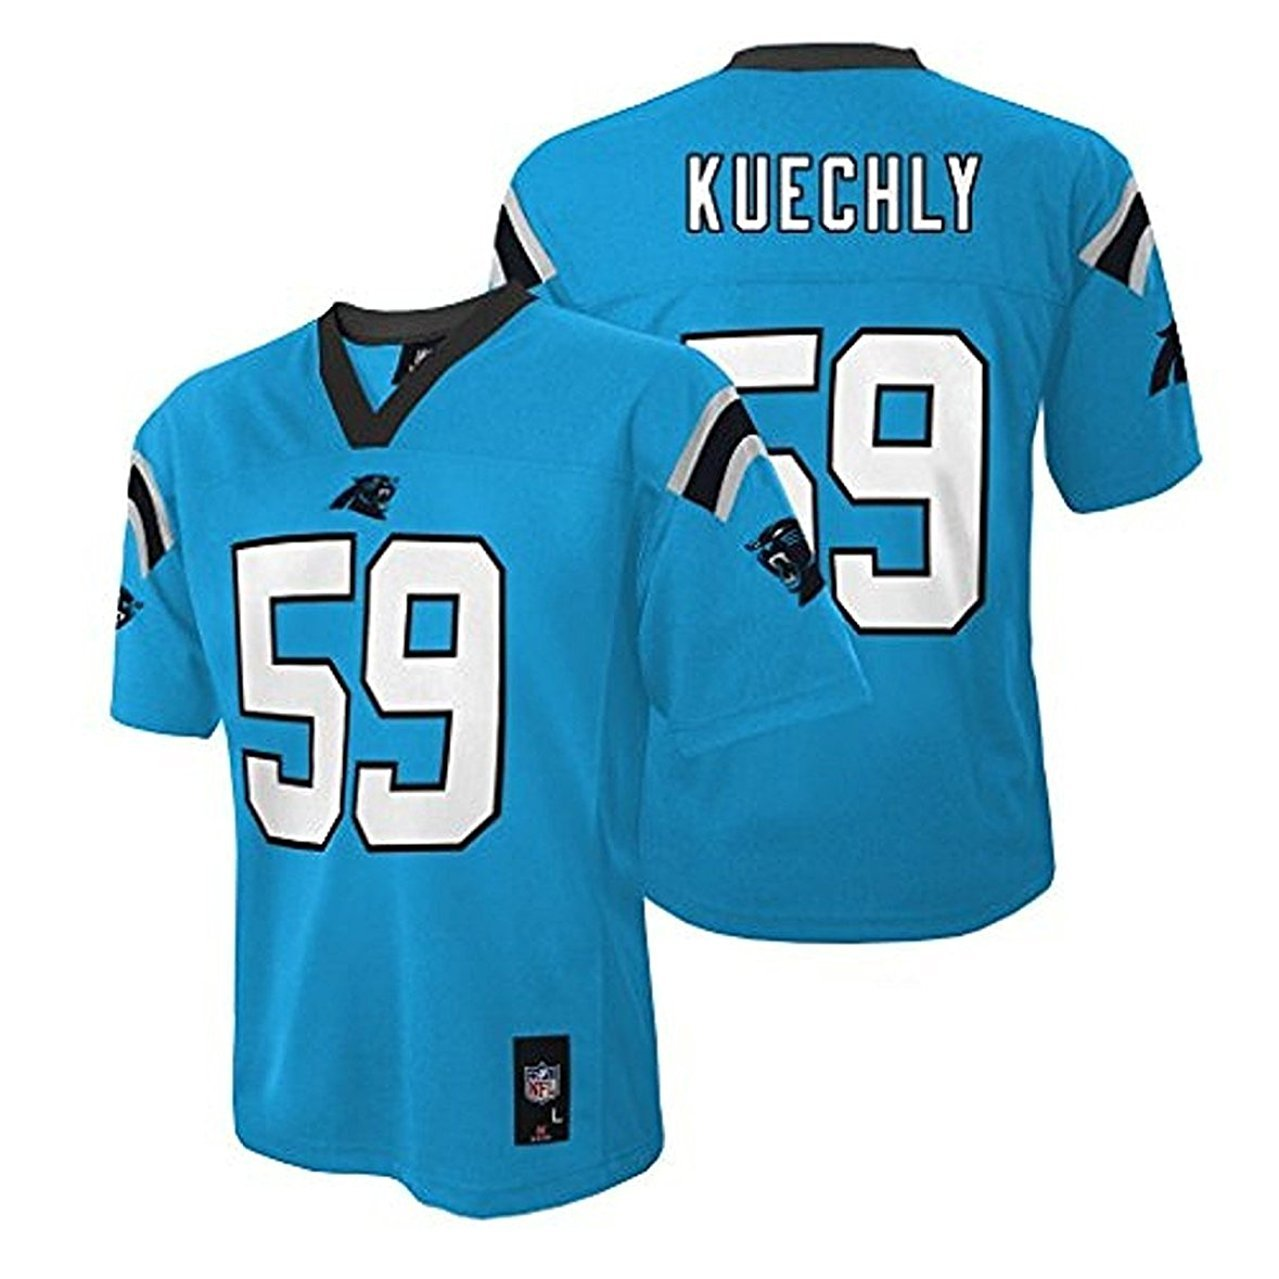 cheap for discount 3759b 4d930 Luke Kuechly Carolina Panthers #59 Blue Kids Mid Tier Alternate Jersey